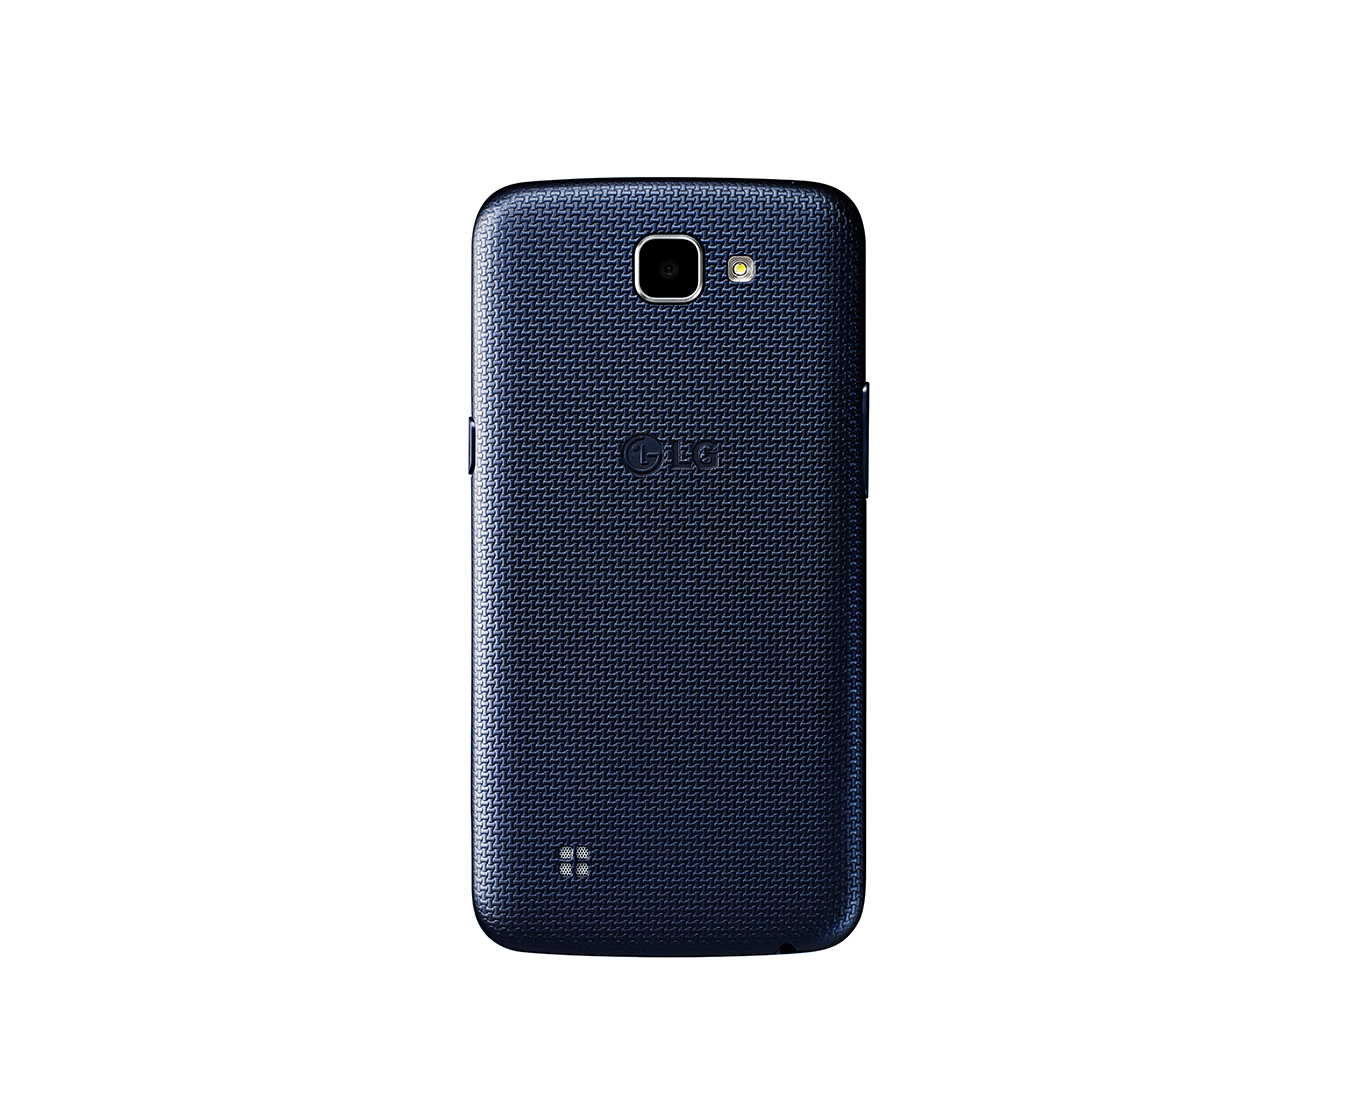 LG K4 Smartphone Review